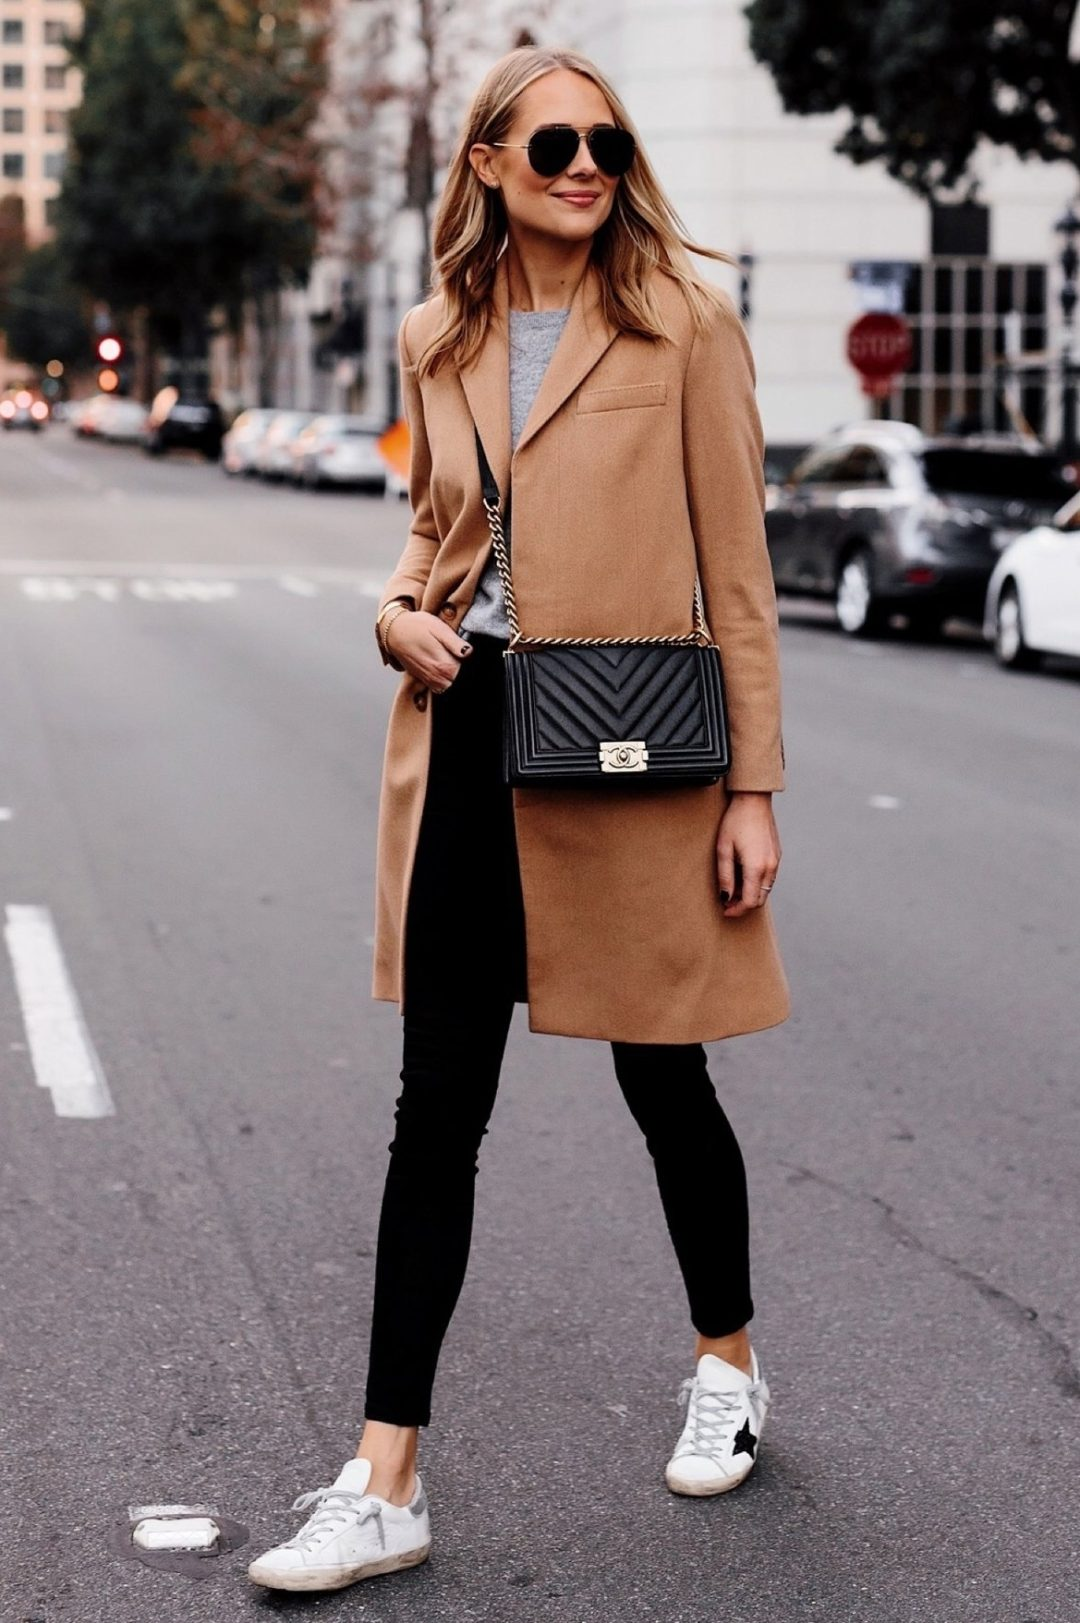 Black leggings outfits for winter with camel coat